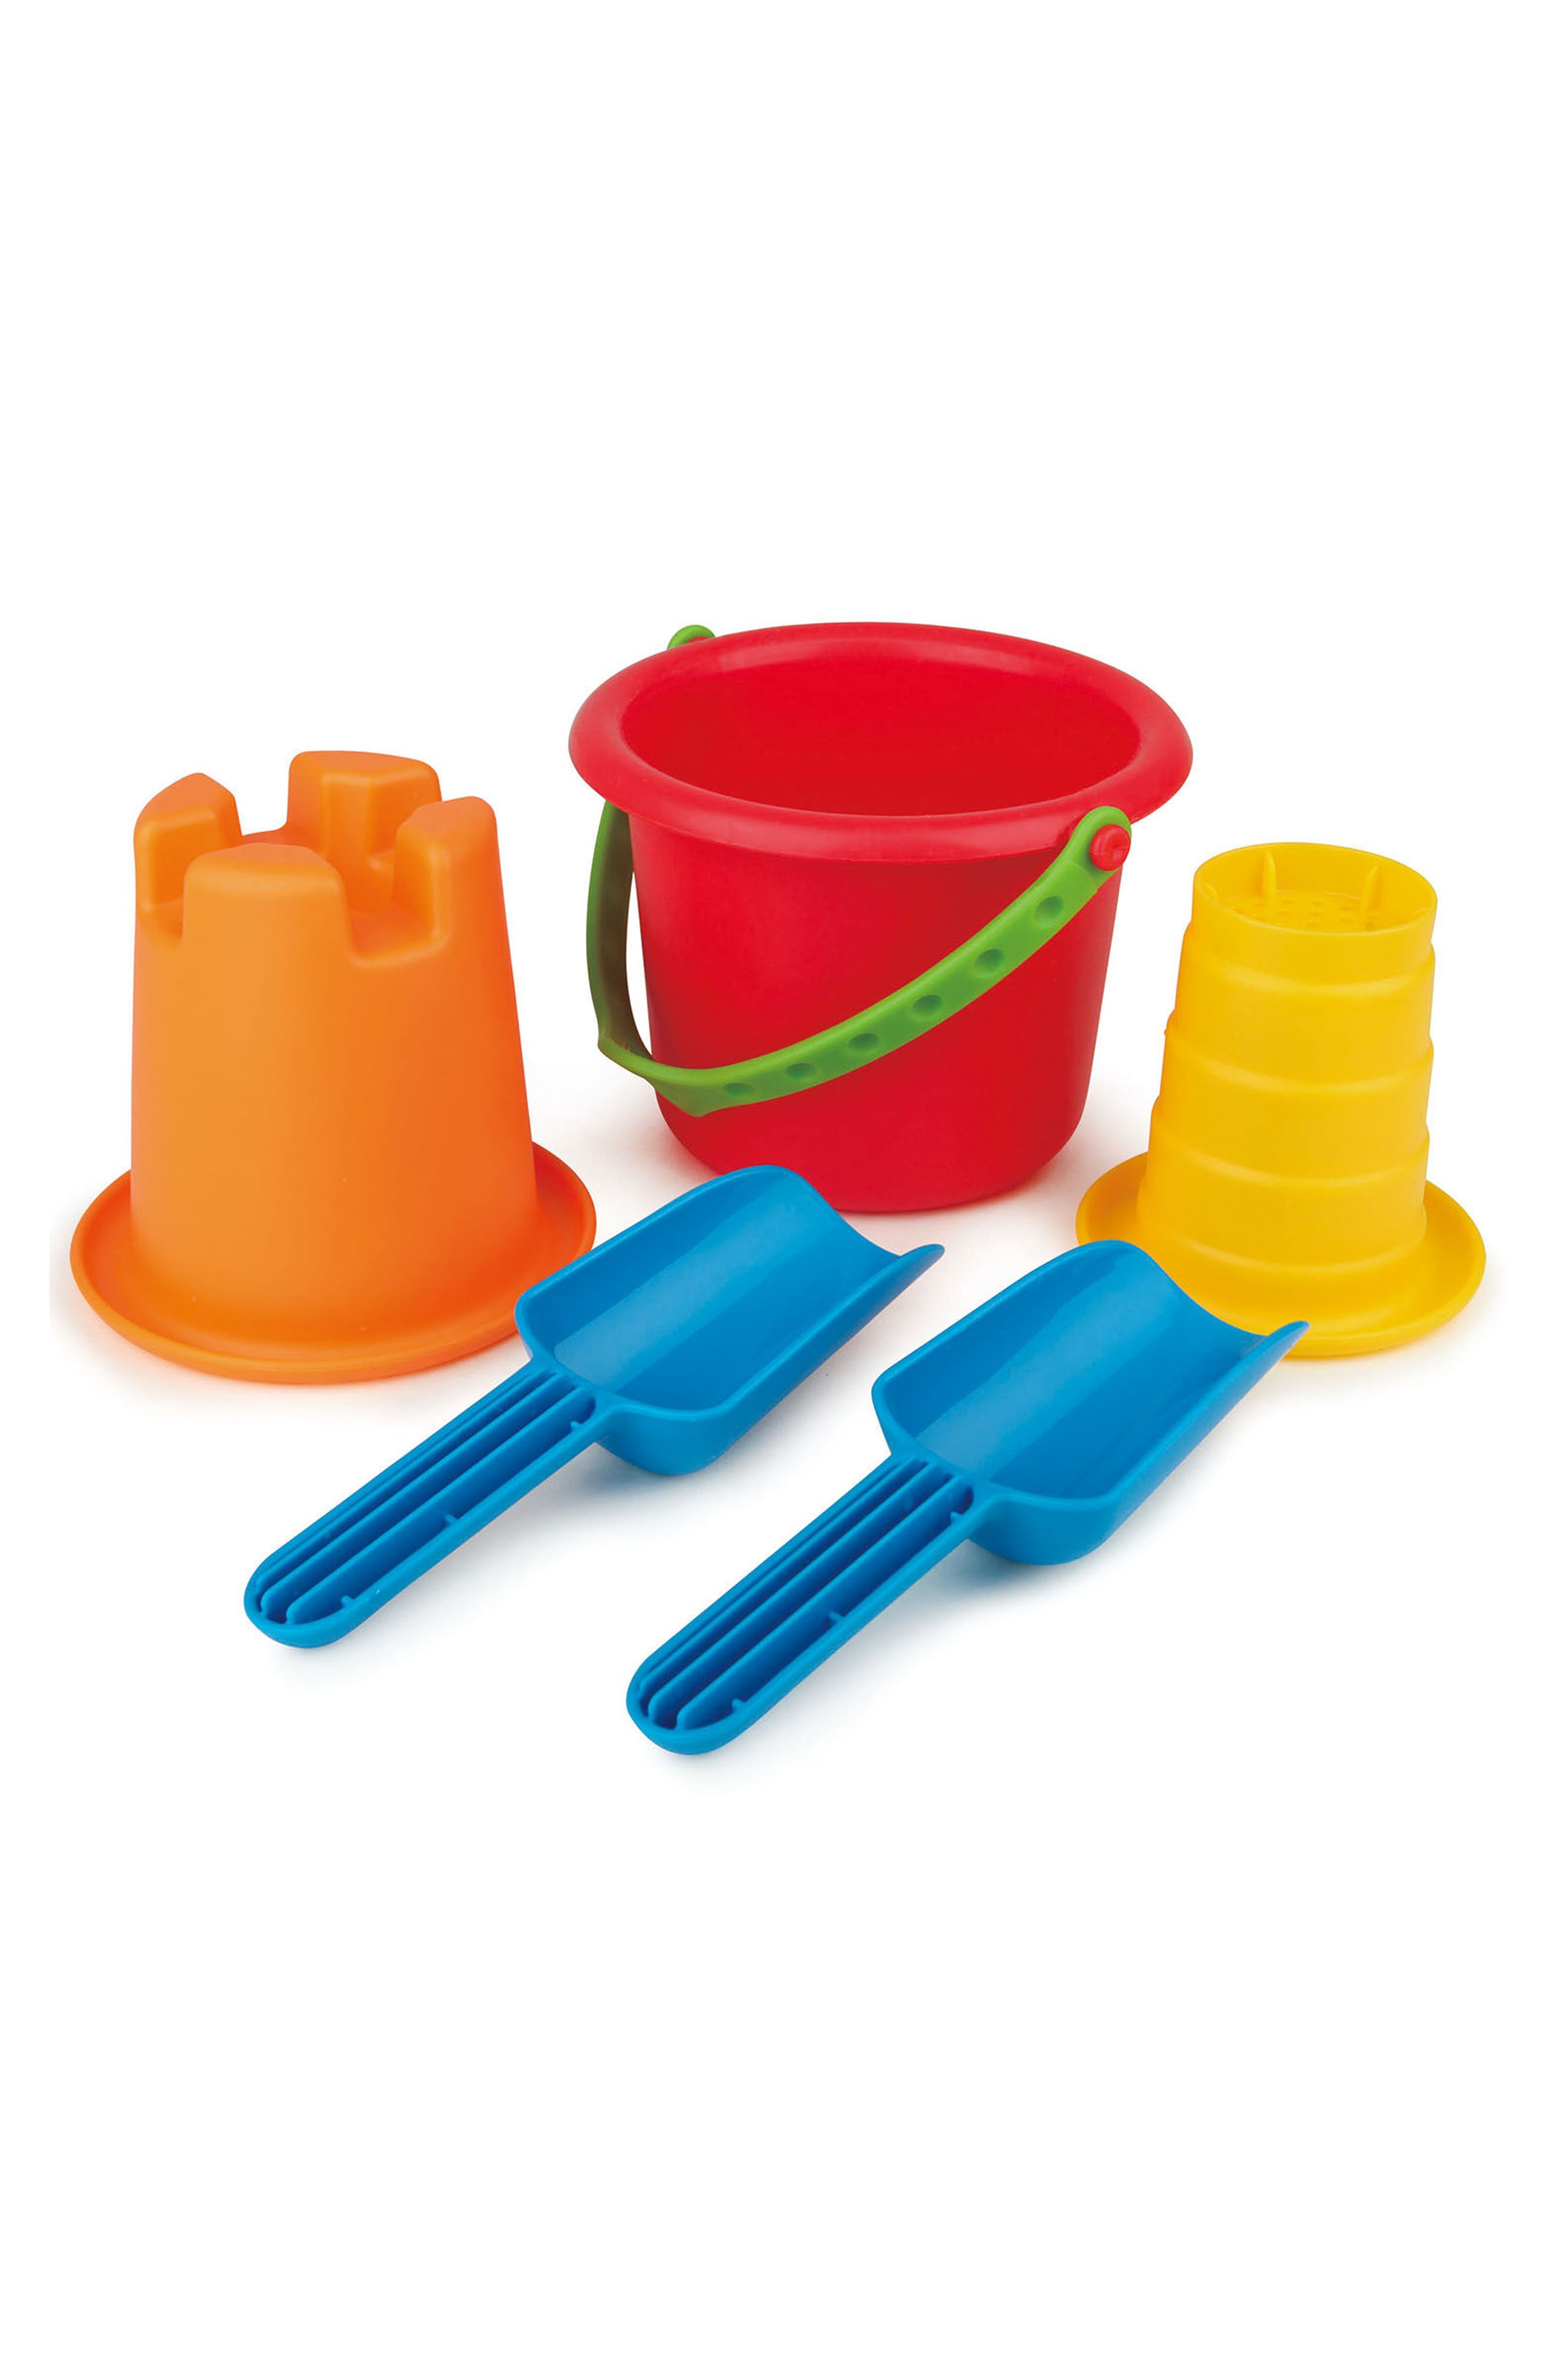 5-in-1 Beach Toy Kit,                         Main,                         color, Multi